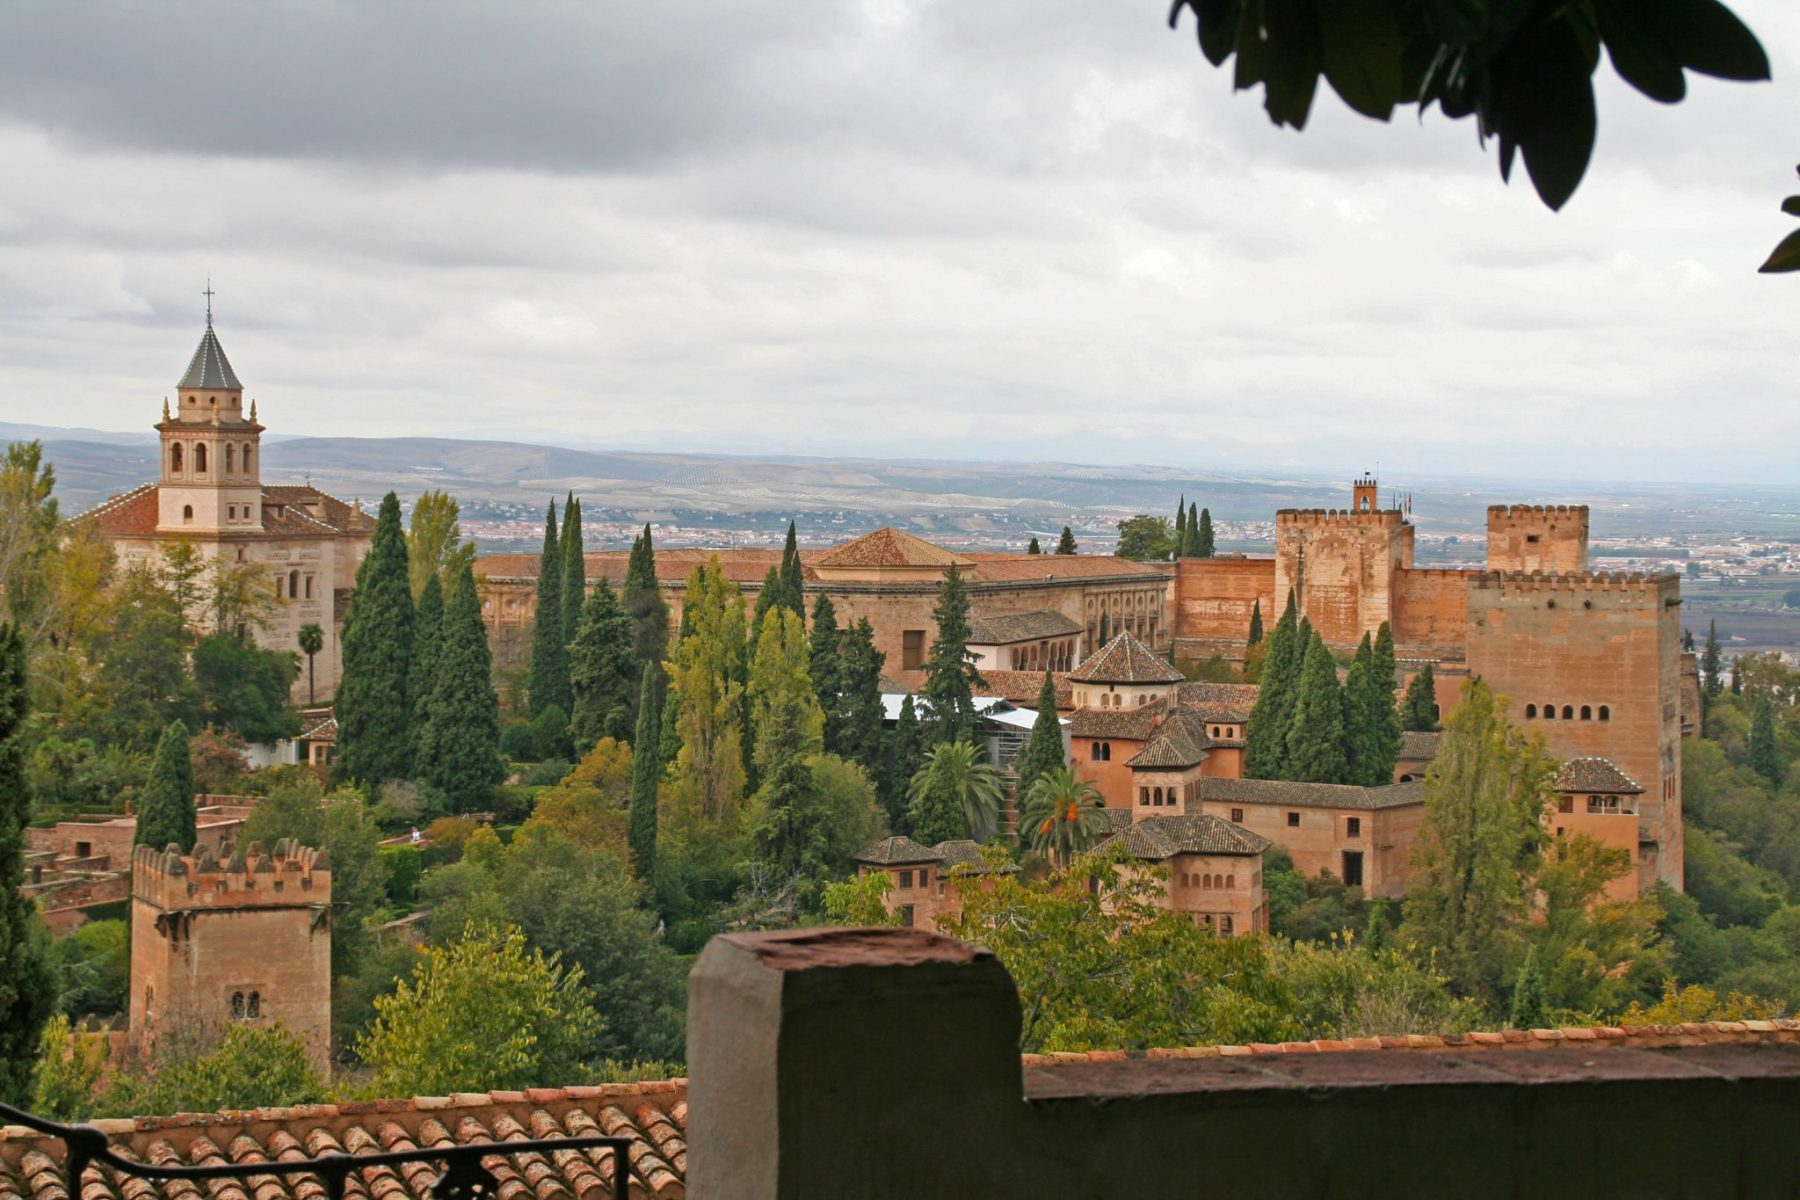 La Alhambra Palace Granada, Spain a palace, fortress complex